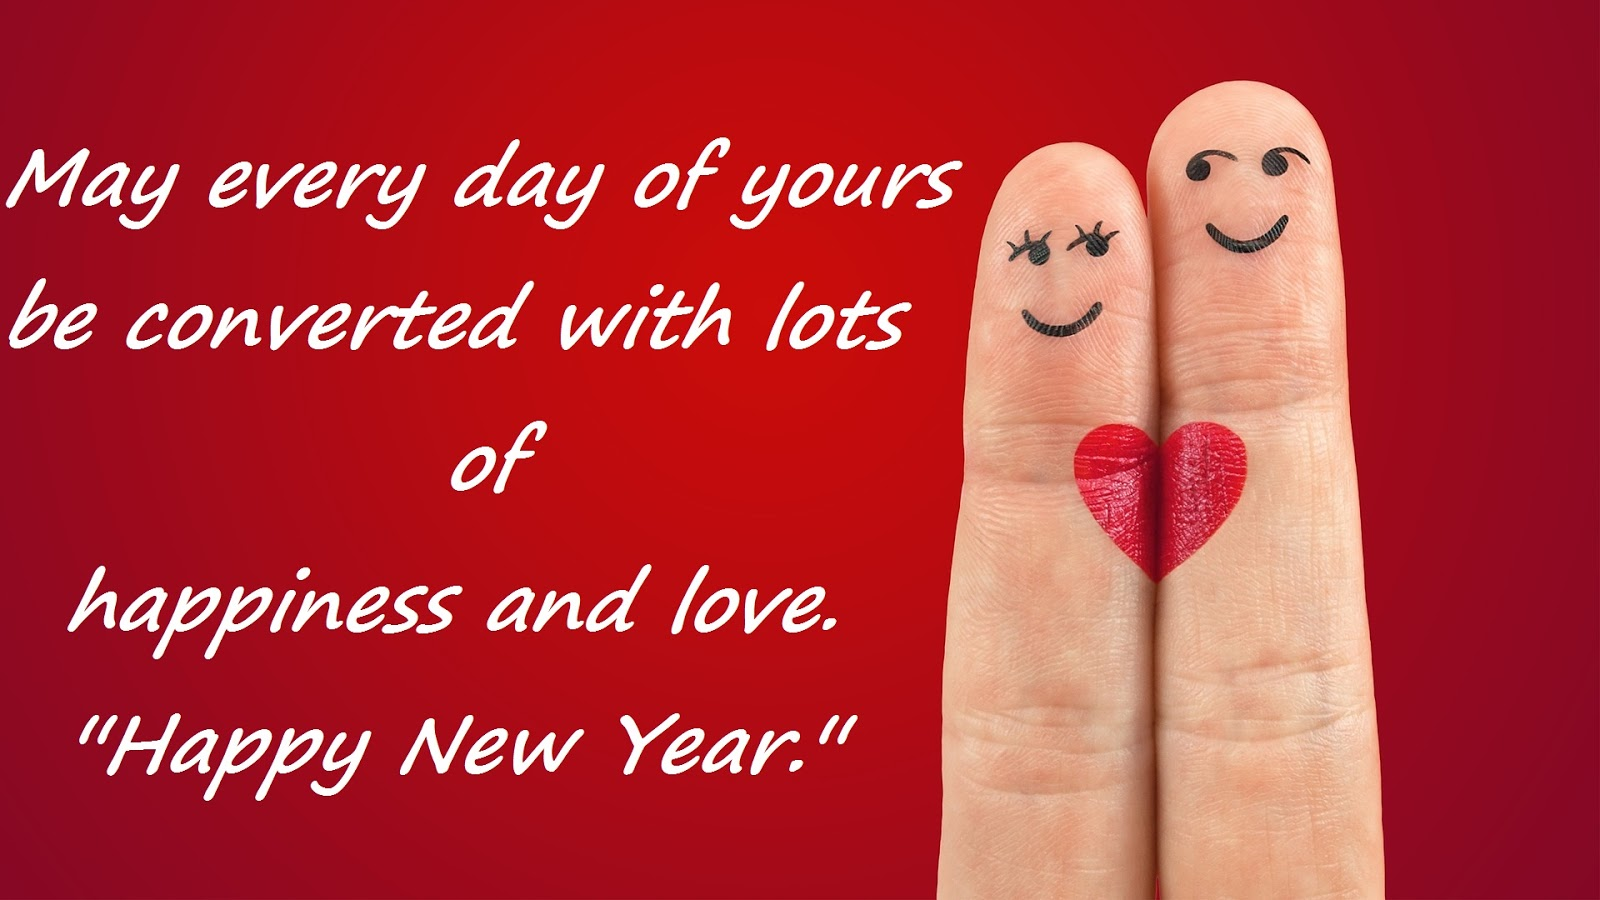 happy new year 2019 wishes for friends family wishes for loves boss colleagues